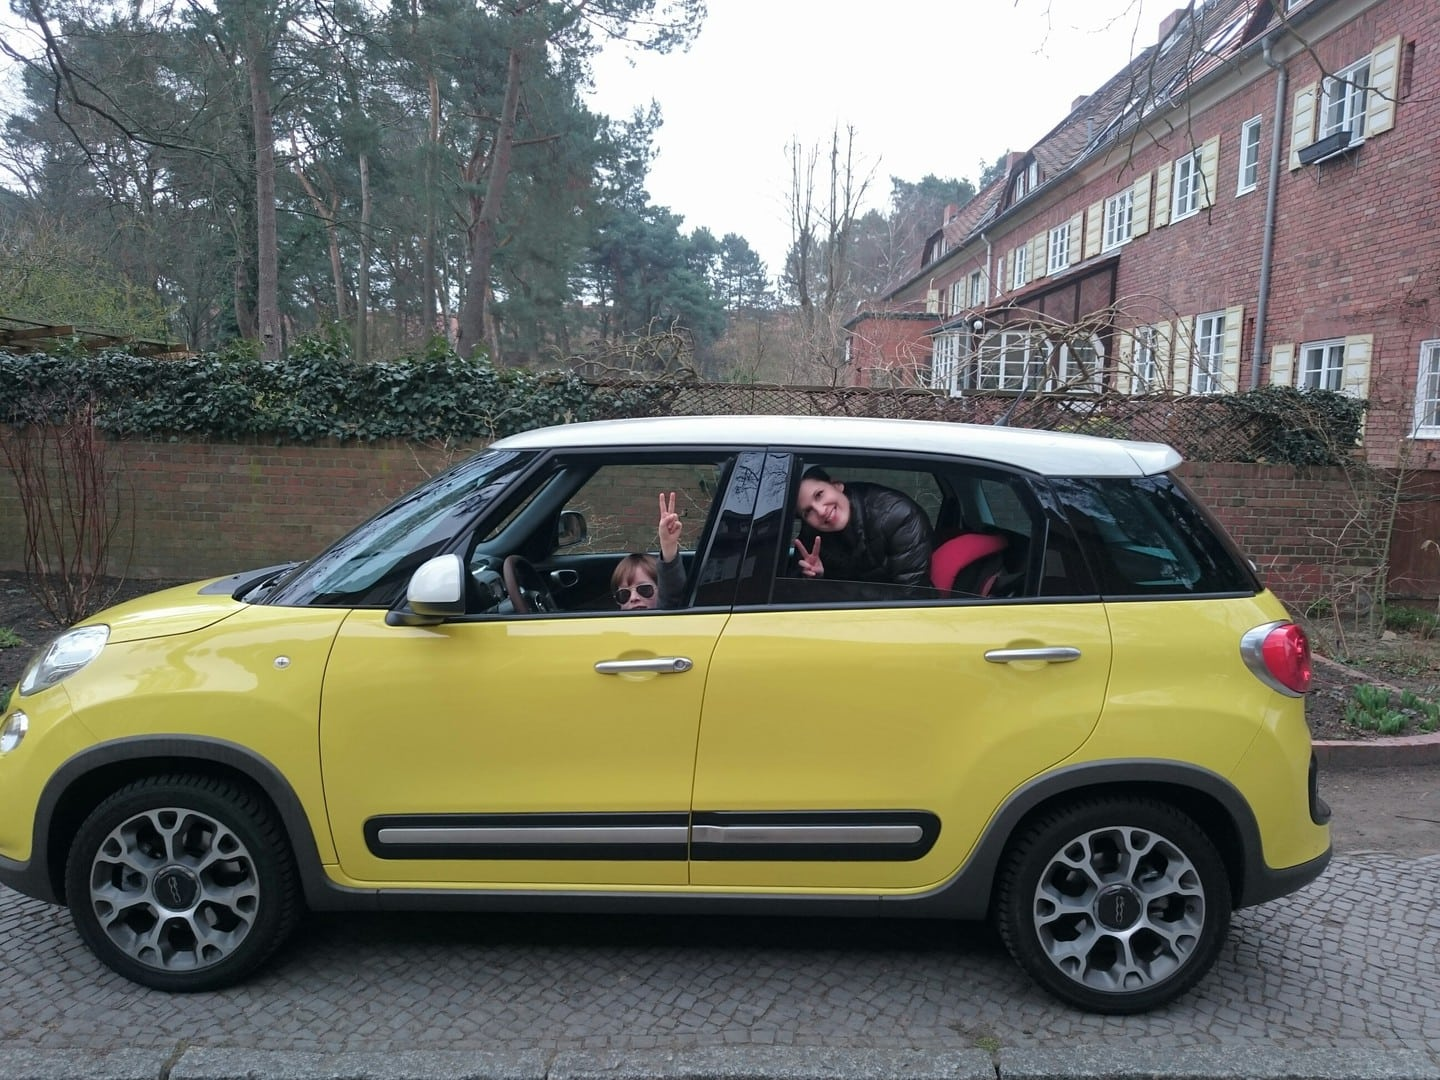 der neue fiat 500l als familienauto it 39 s yellow amore. Black Bedroom Furniture Sets. Home Design Ideas